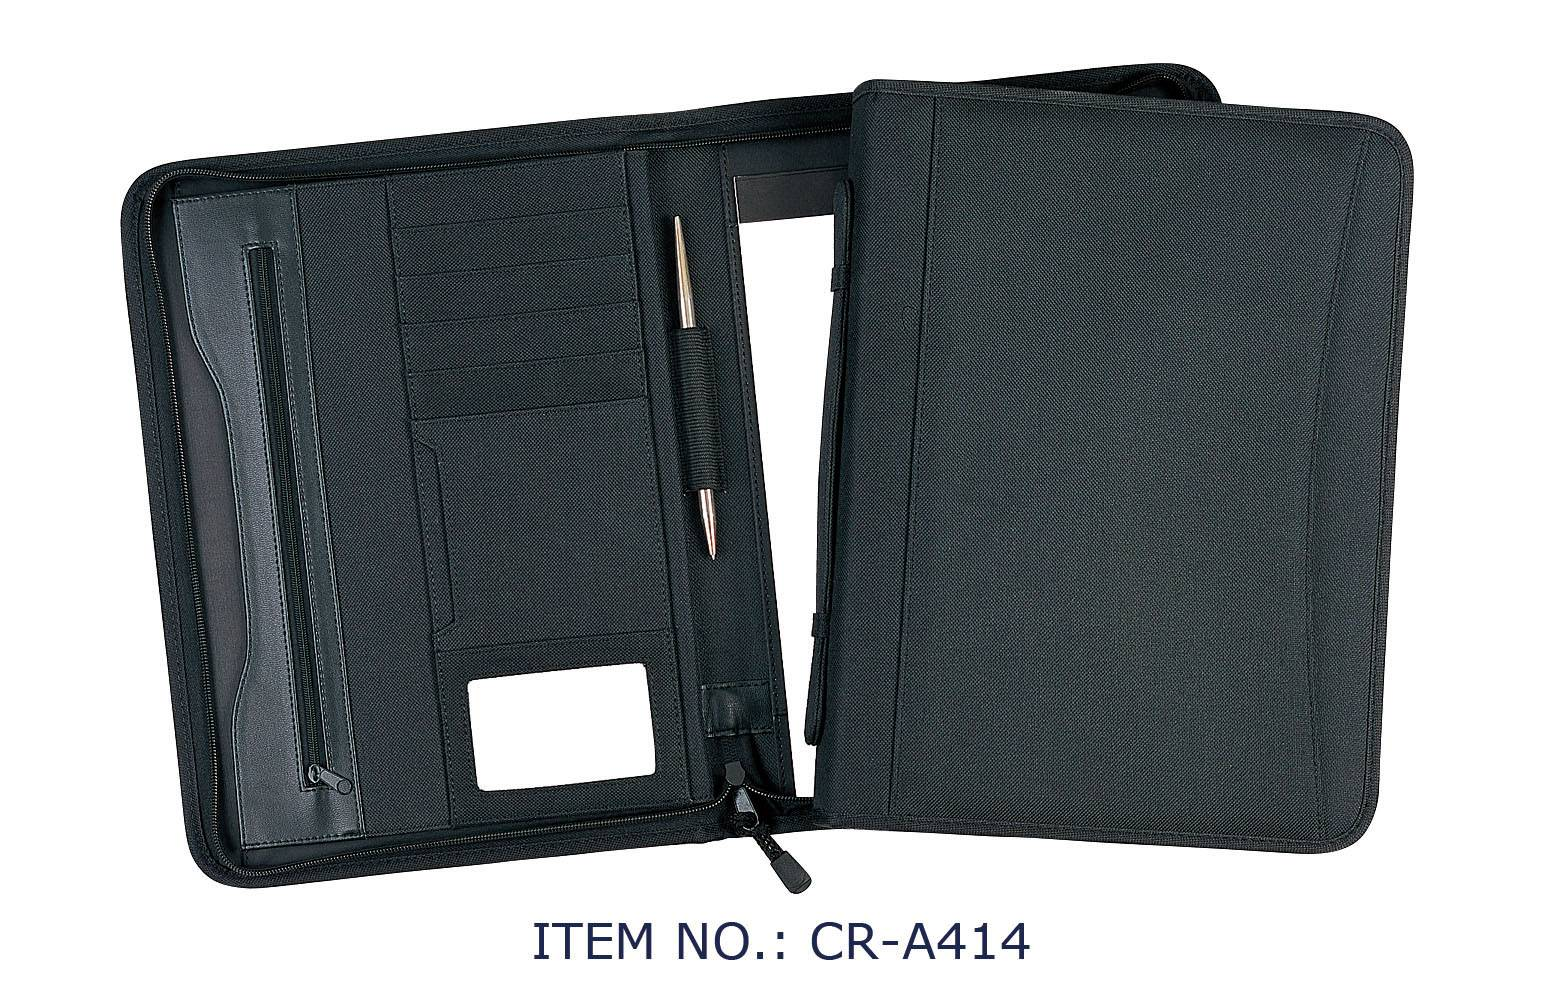 a4 presentation file folders / high quality leather document folders / zippered